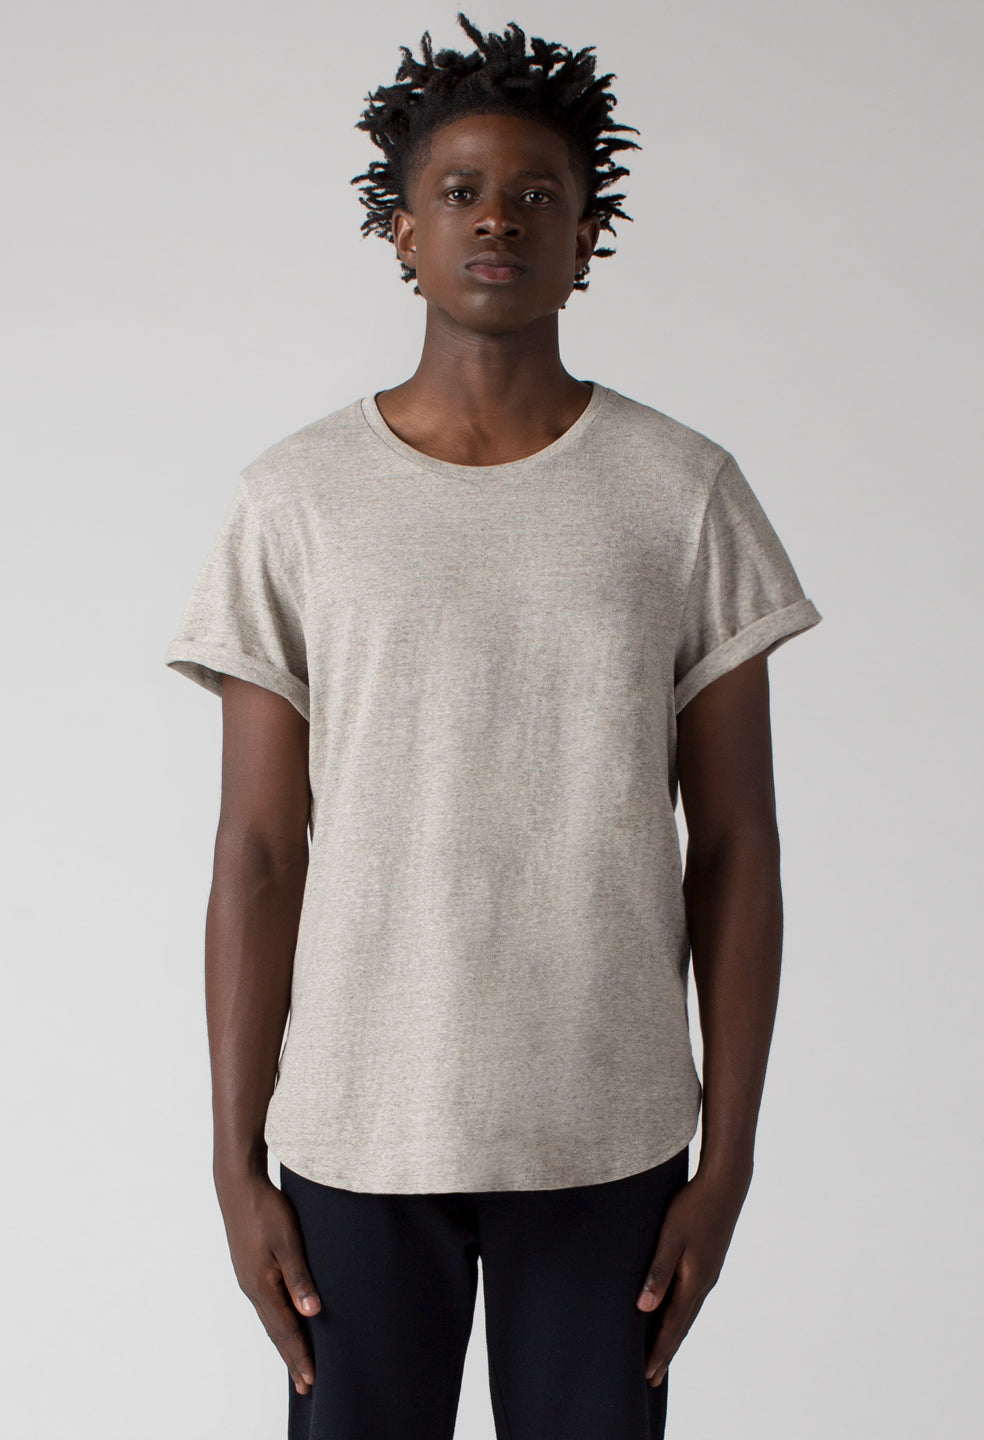 T-Shirt A - Sandstone